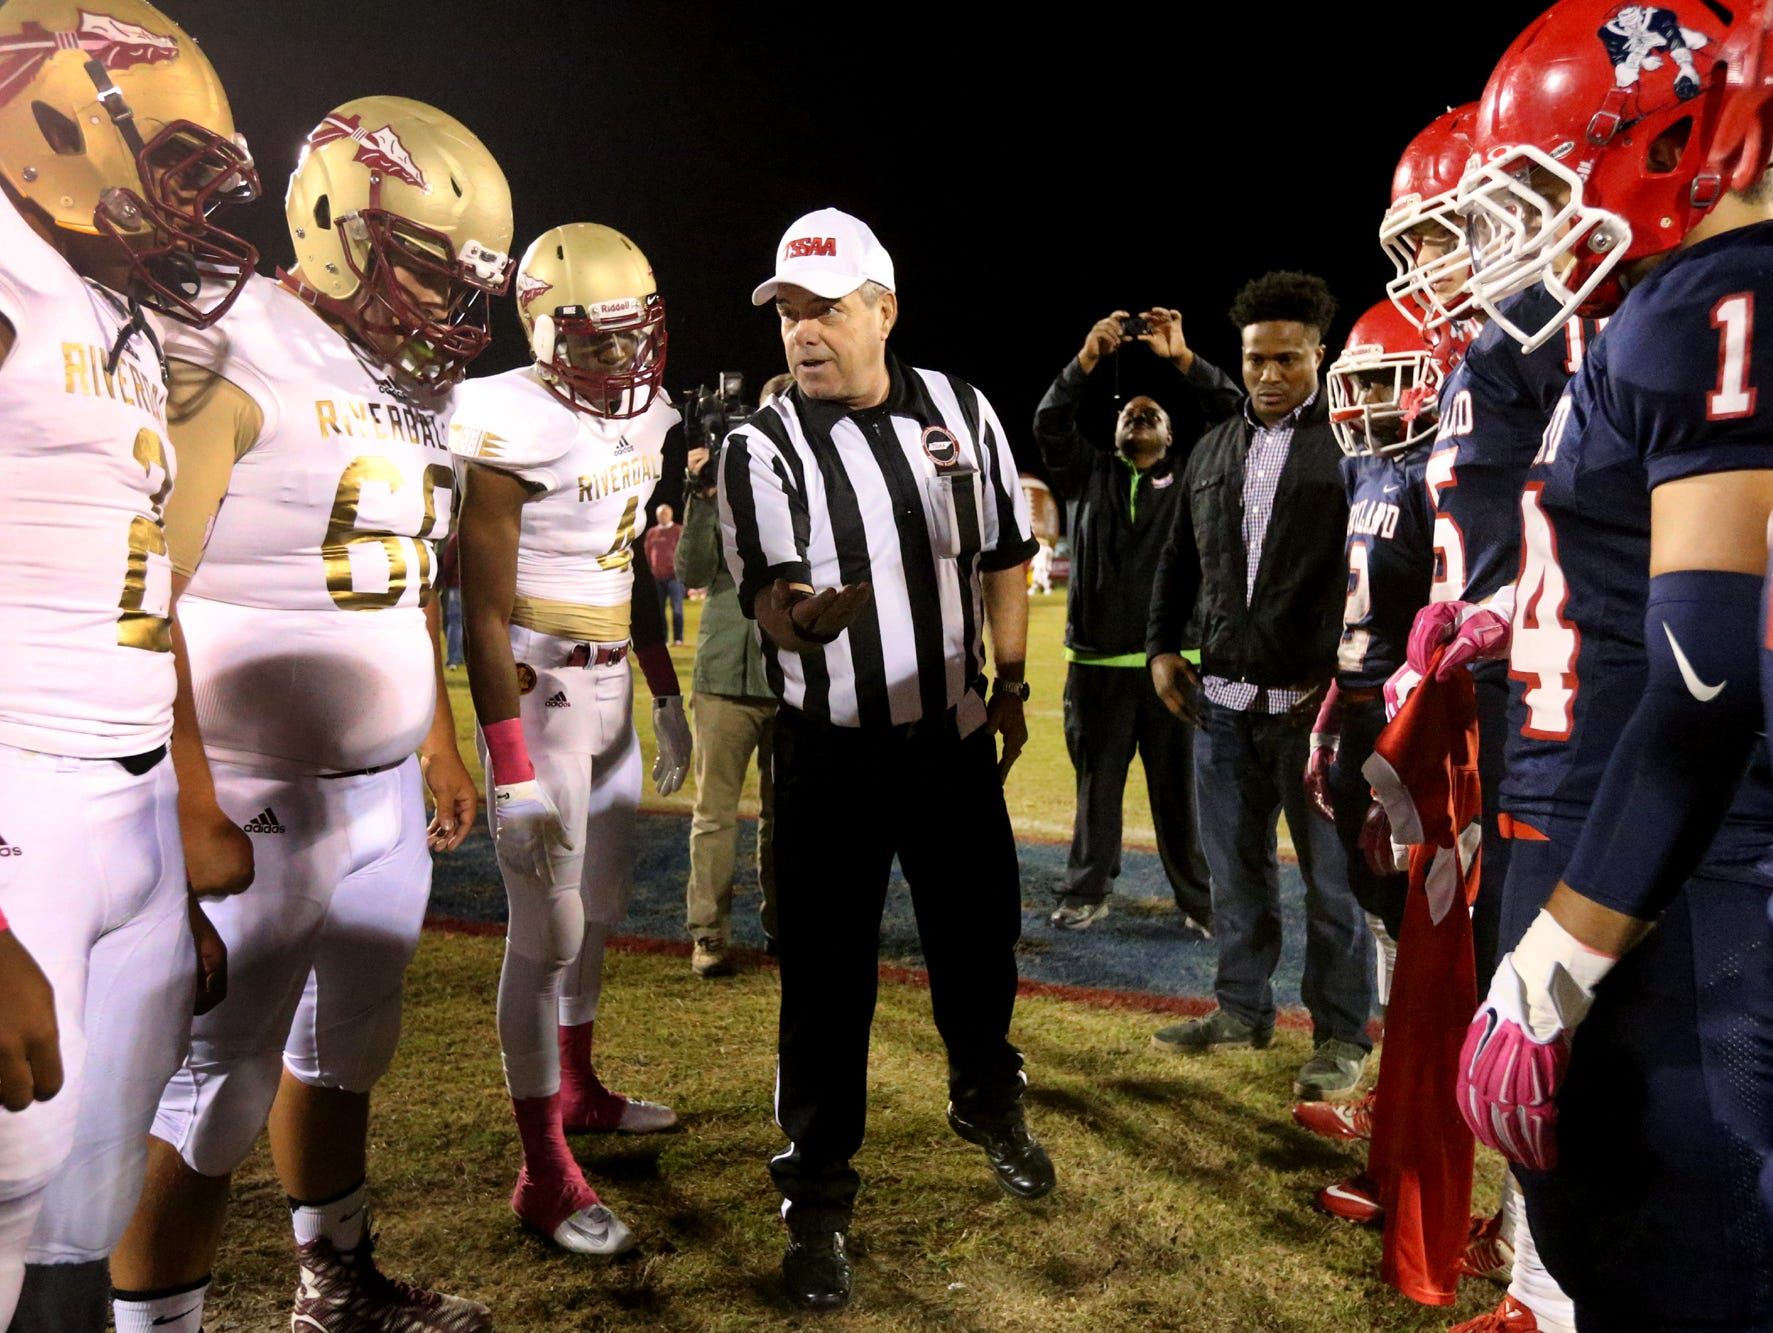 Head referee David Porter asks Riverdale to call a side before the coin toss at the begining of the Riverdale vs. Oakland game,also known as the Battle of the Boro. Oakland players carry the jersey of former teammate Jeremy McConville, who died in his sophomore year.